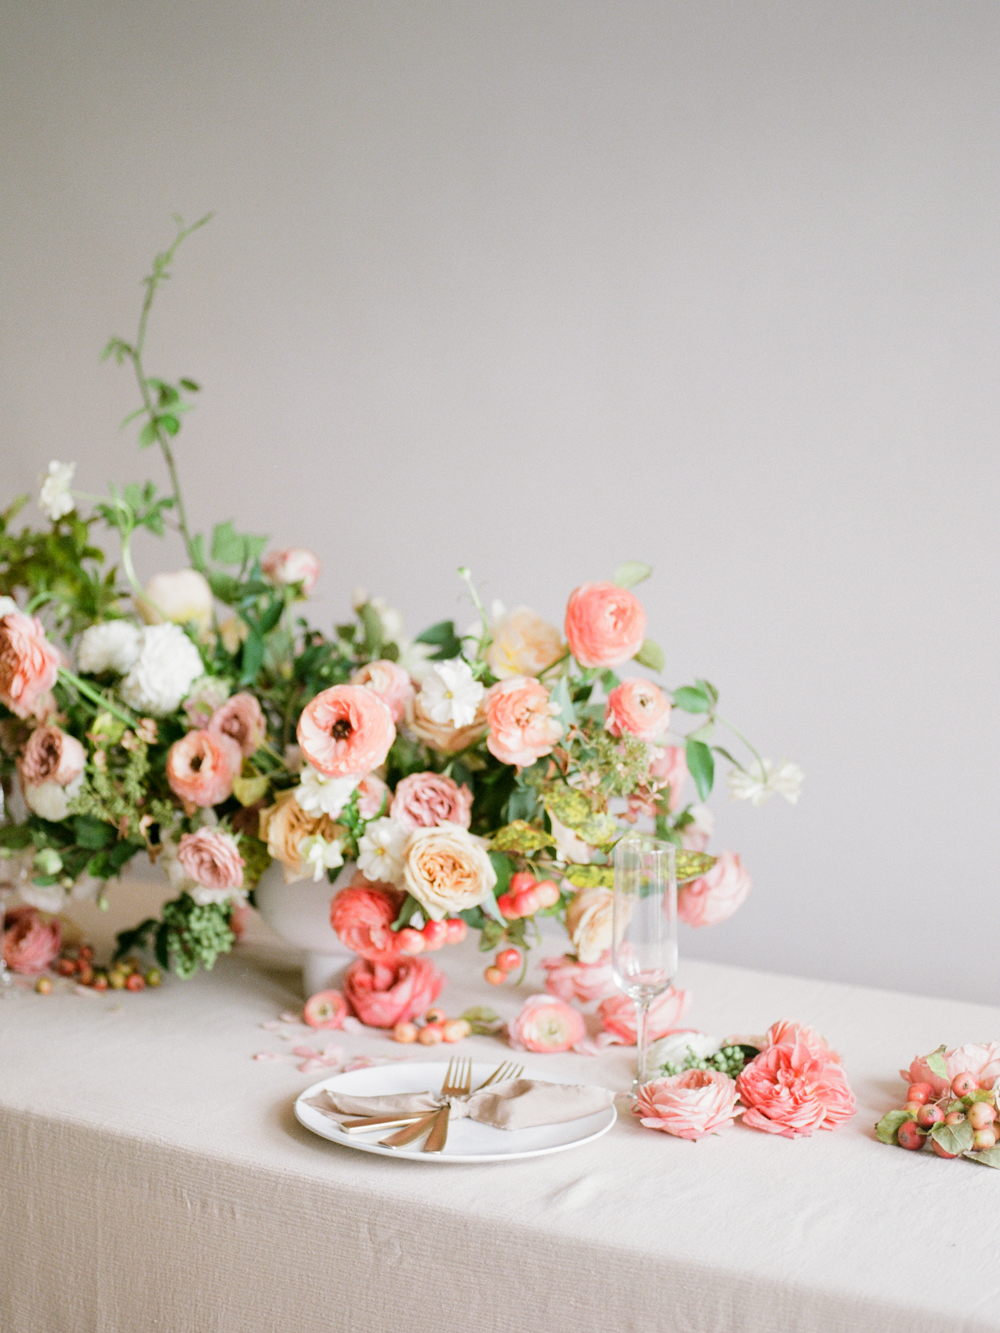 film wedding photographer - Houston wedding photographer - intimate wedding photographer - Christine Gosch - fall wedding inspiration - blush fall wedding - wedding flowers - fall wedding flowers - wedding table inspo-2- Maxit Flower Design.jpg